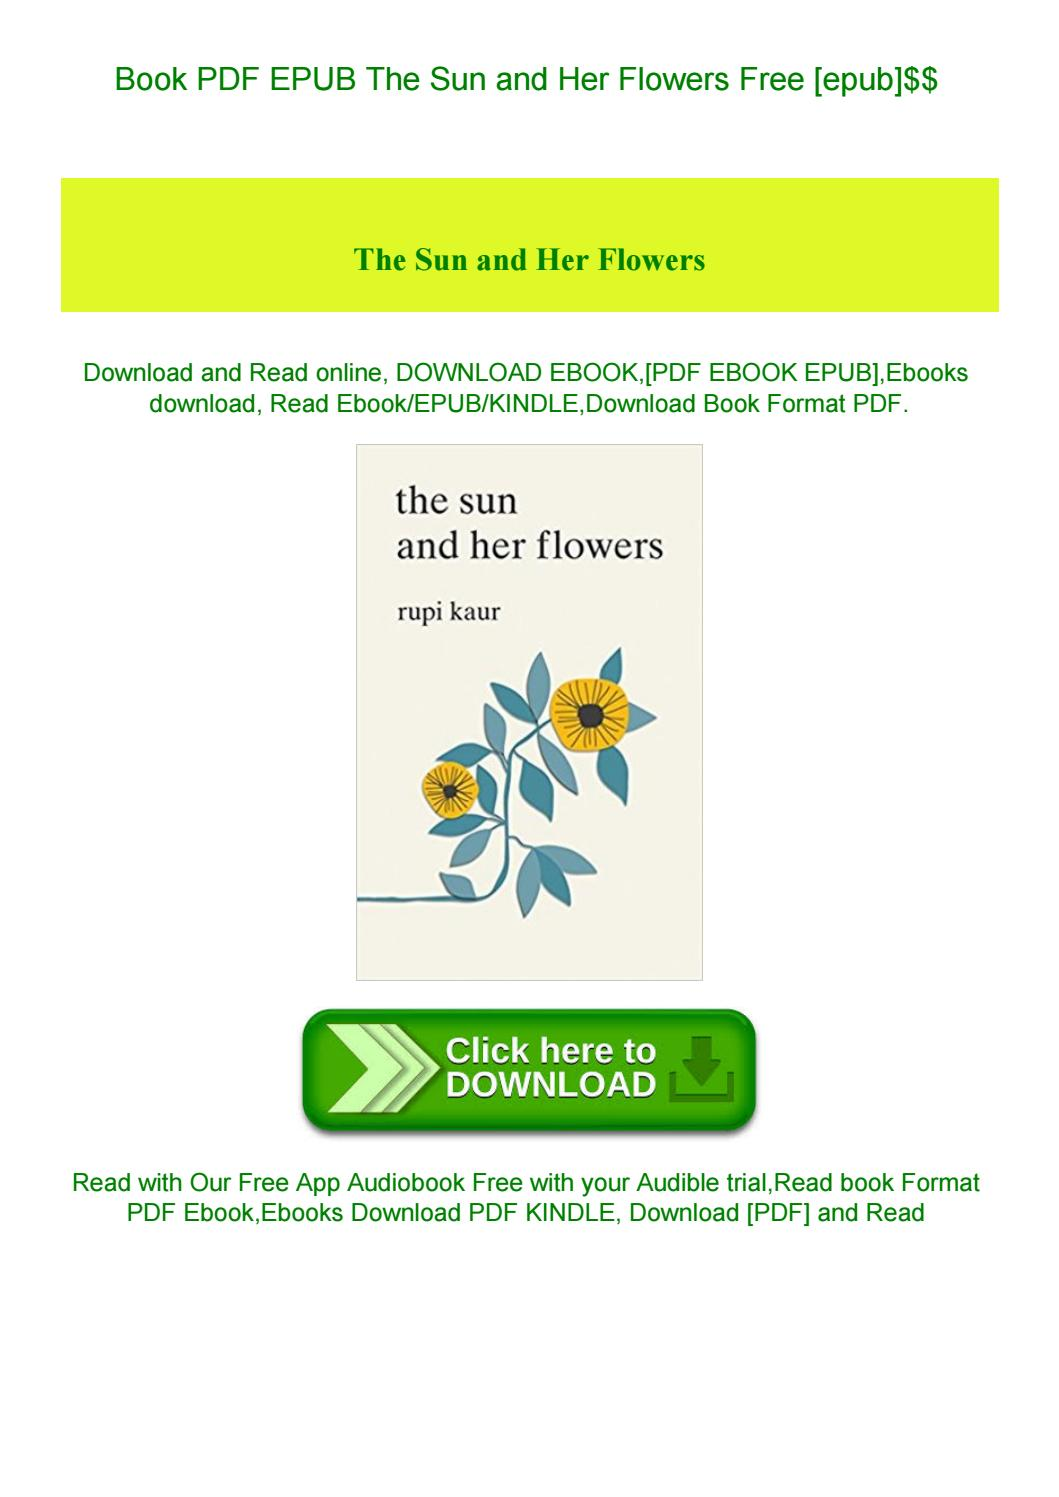 the sun and her flowers epub free